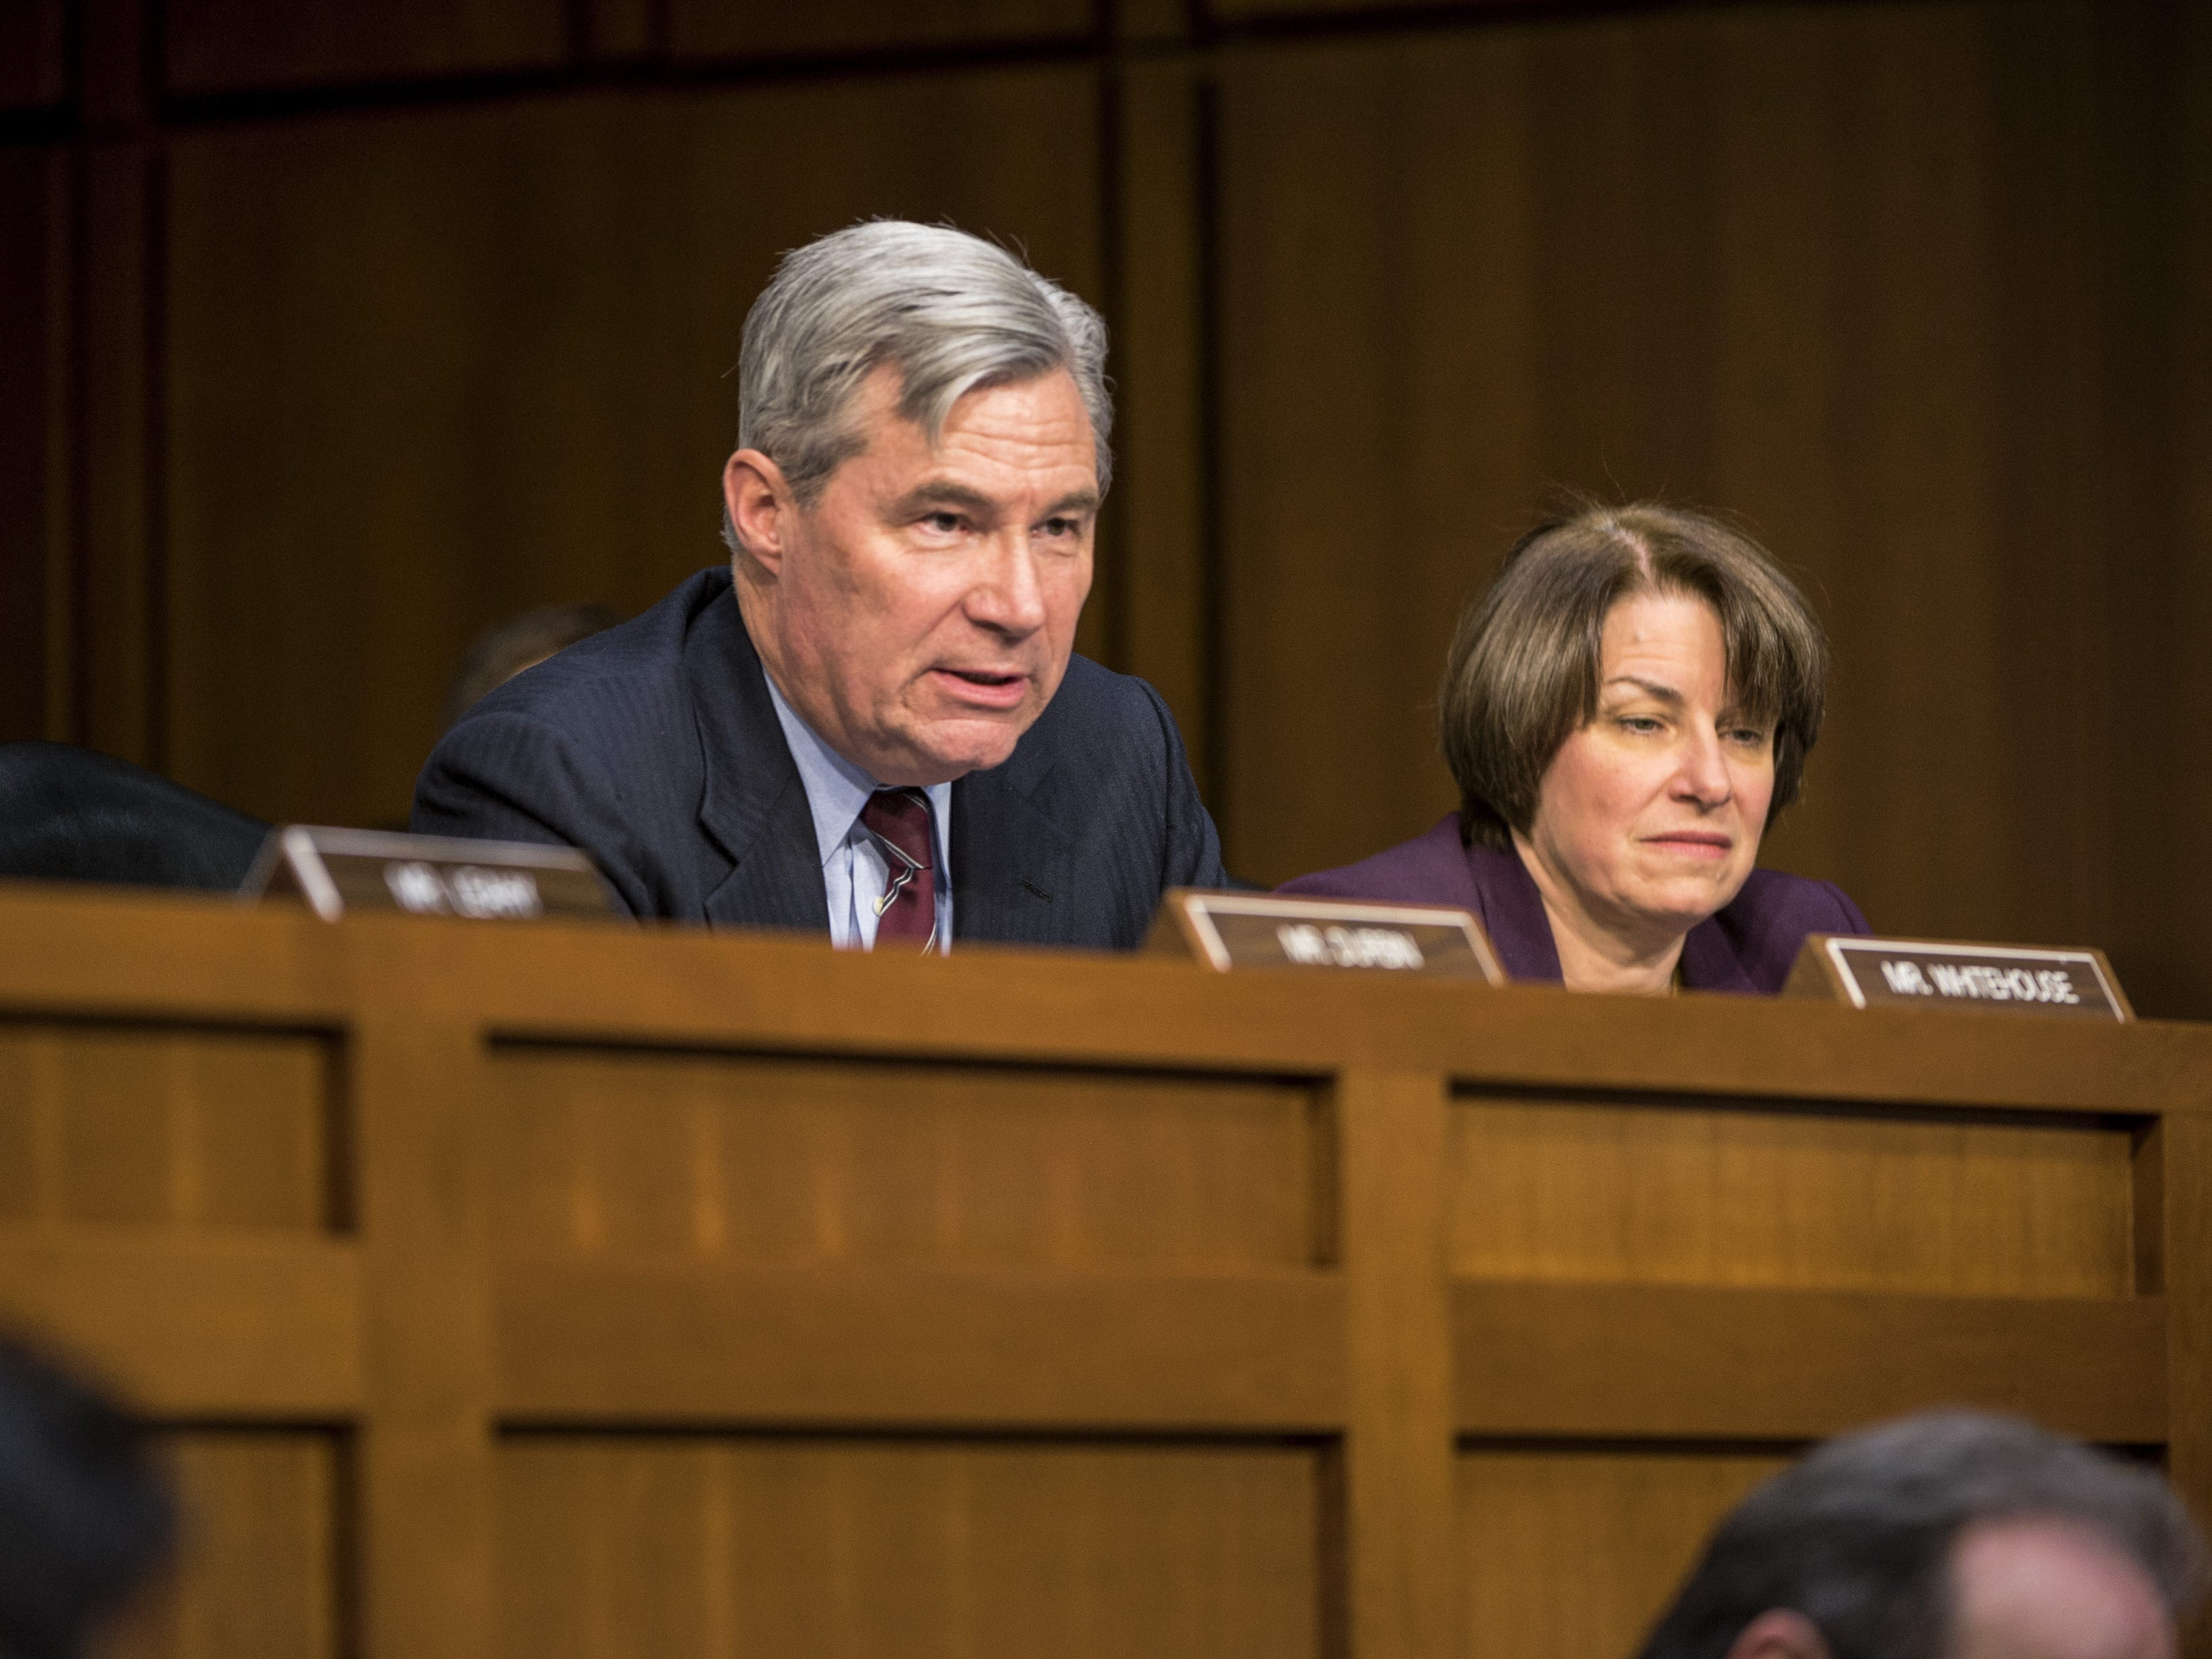 Sheldon Whitehouse (Washington D.C.): Second-term United States Senator from Rhode Island. Formerly, Attorney General for the State of Rhode Island and Providence Plantations; U.S. Attorney for the District of Rhode Island.